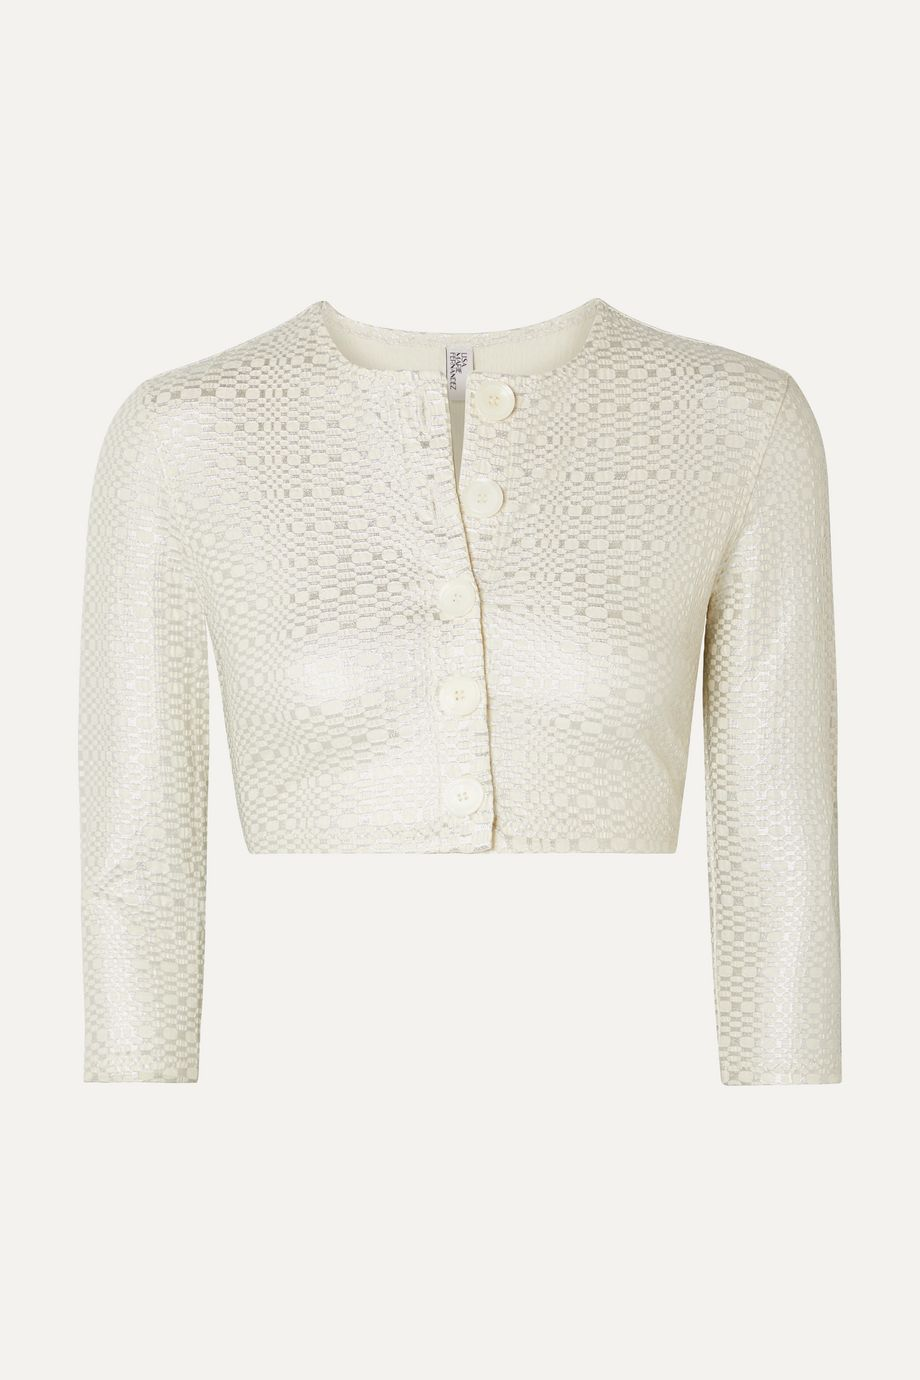 Lisa Marie Fernandez Cropped metallic seersucker cardigan